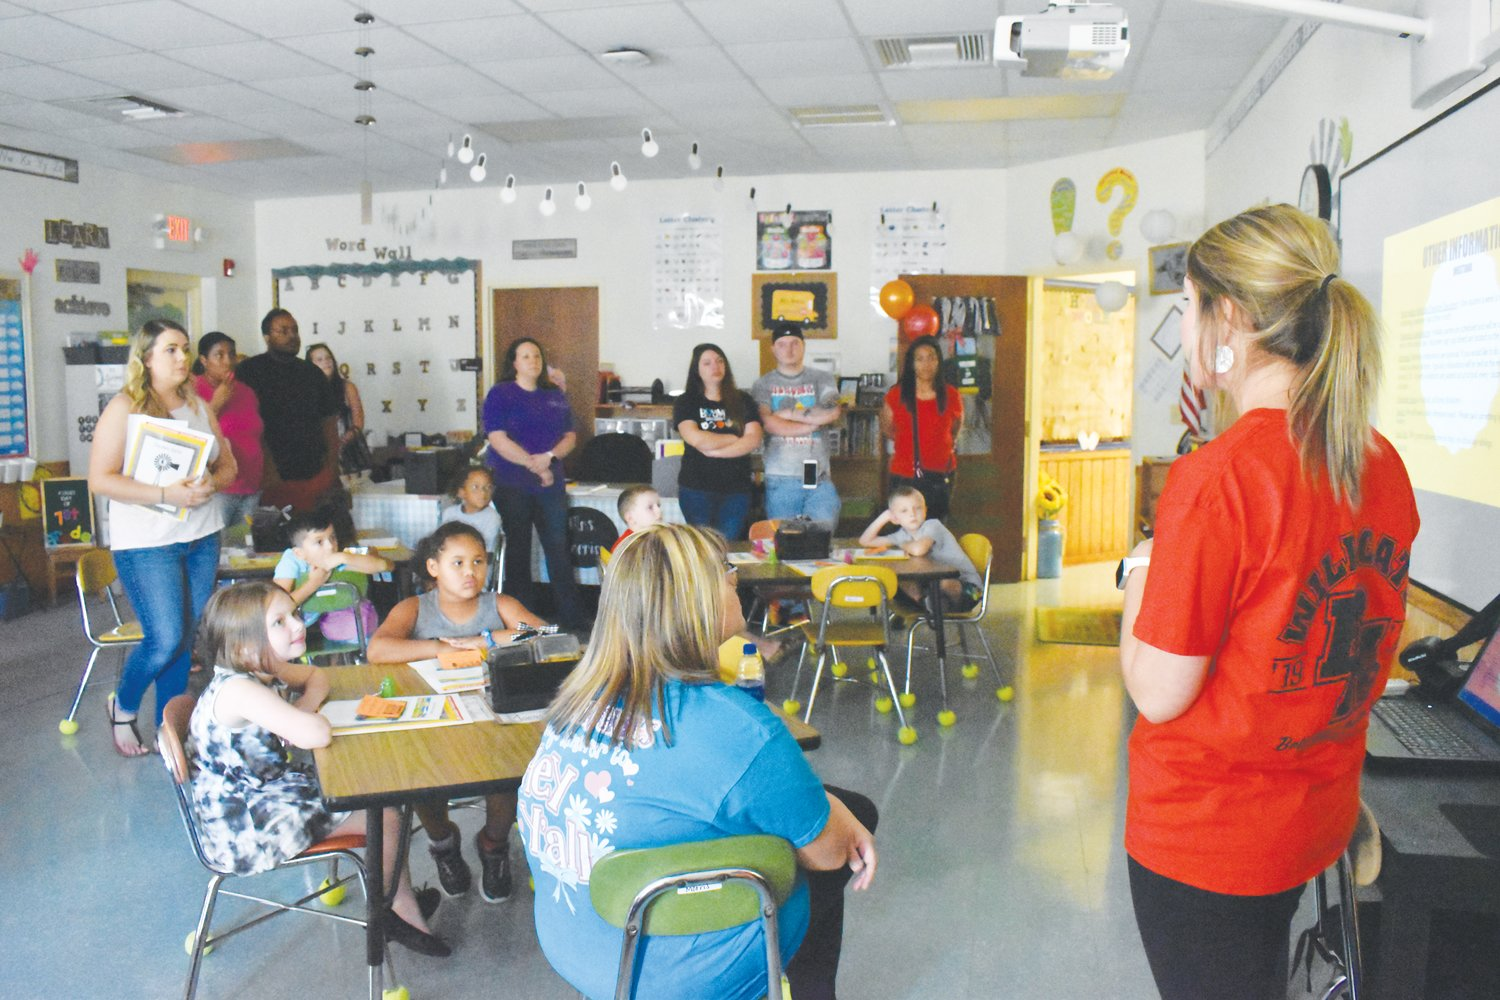 Bethel Hill first-grade teacher Samantha Morris explains to students and parents what they can expect when the school year kicks off on Monday.